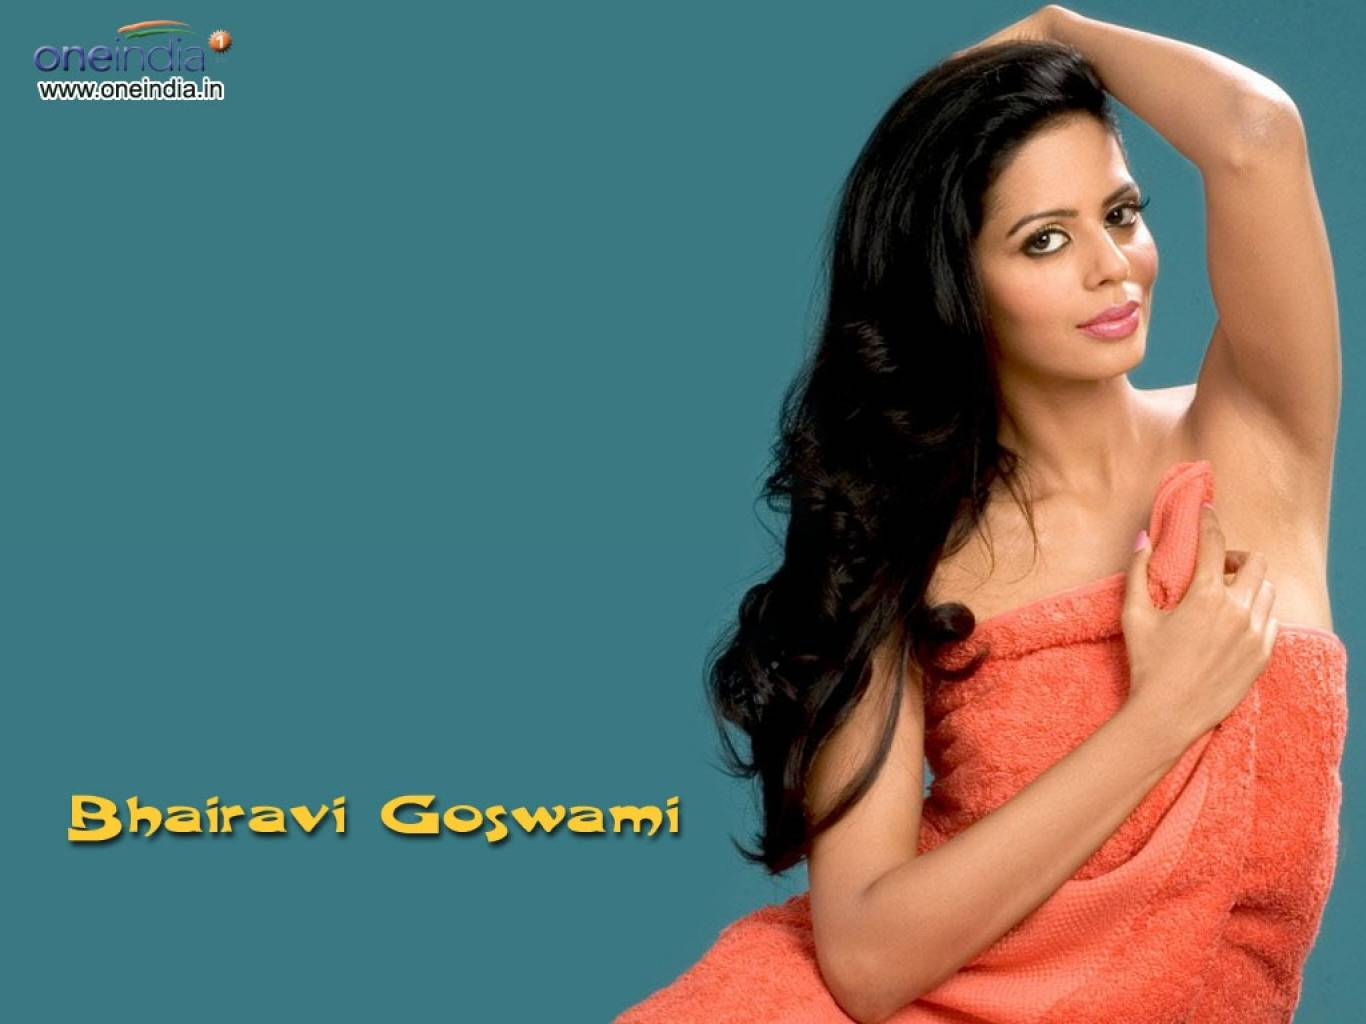 Bhairavi Goswami Wallpapers